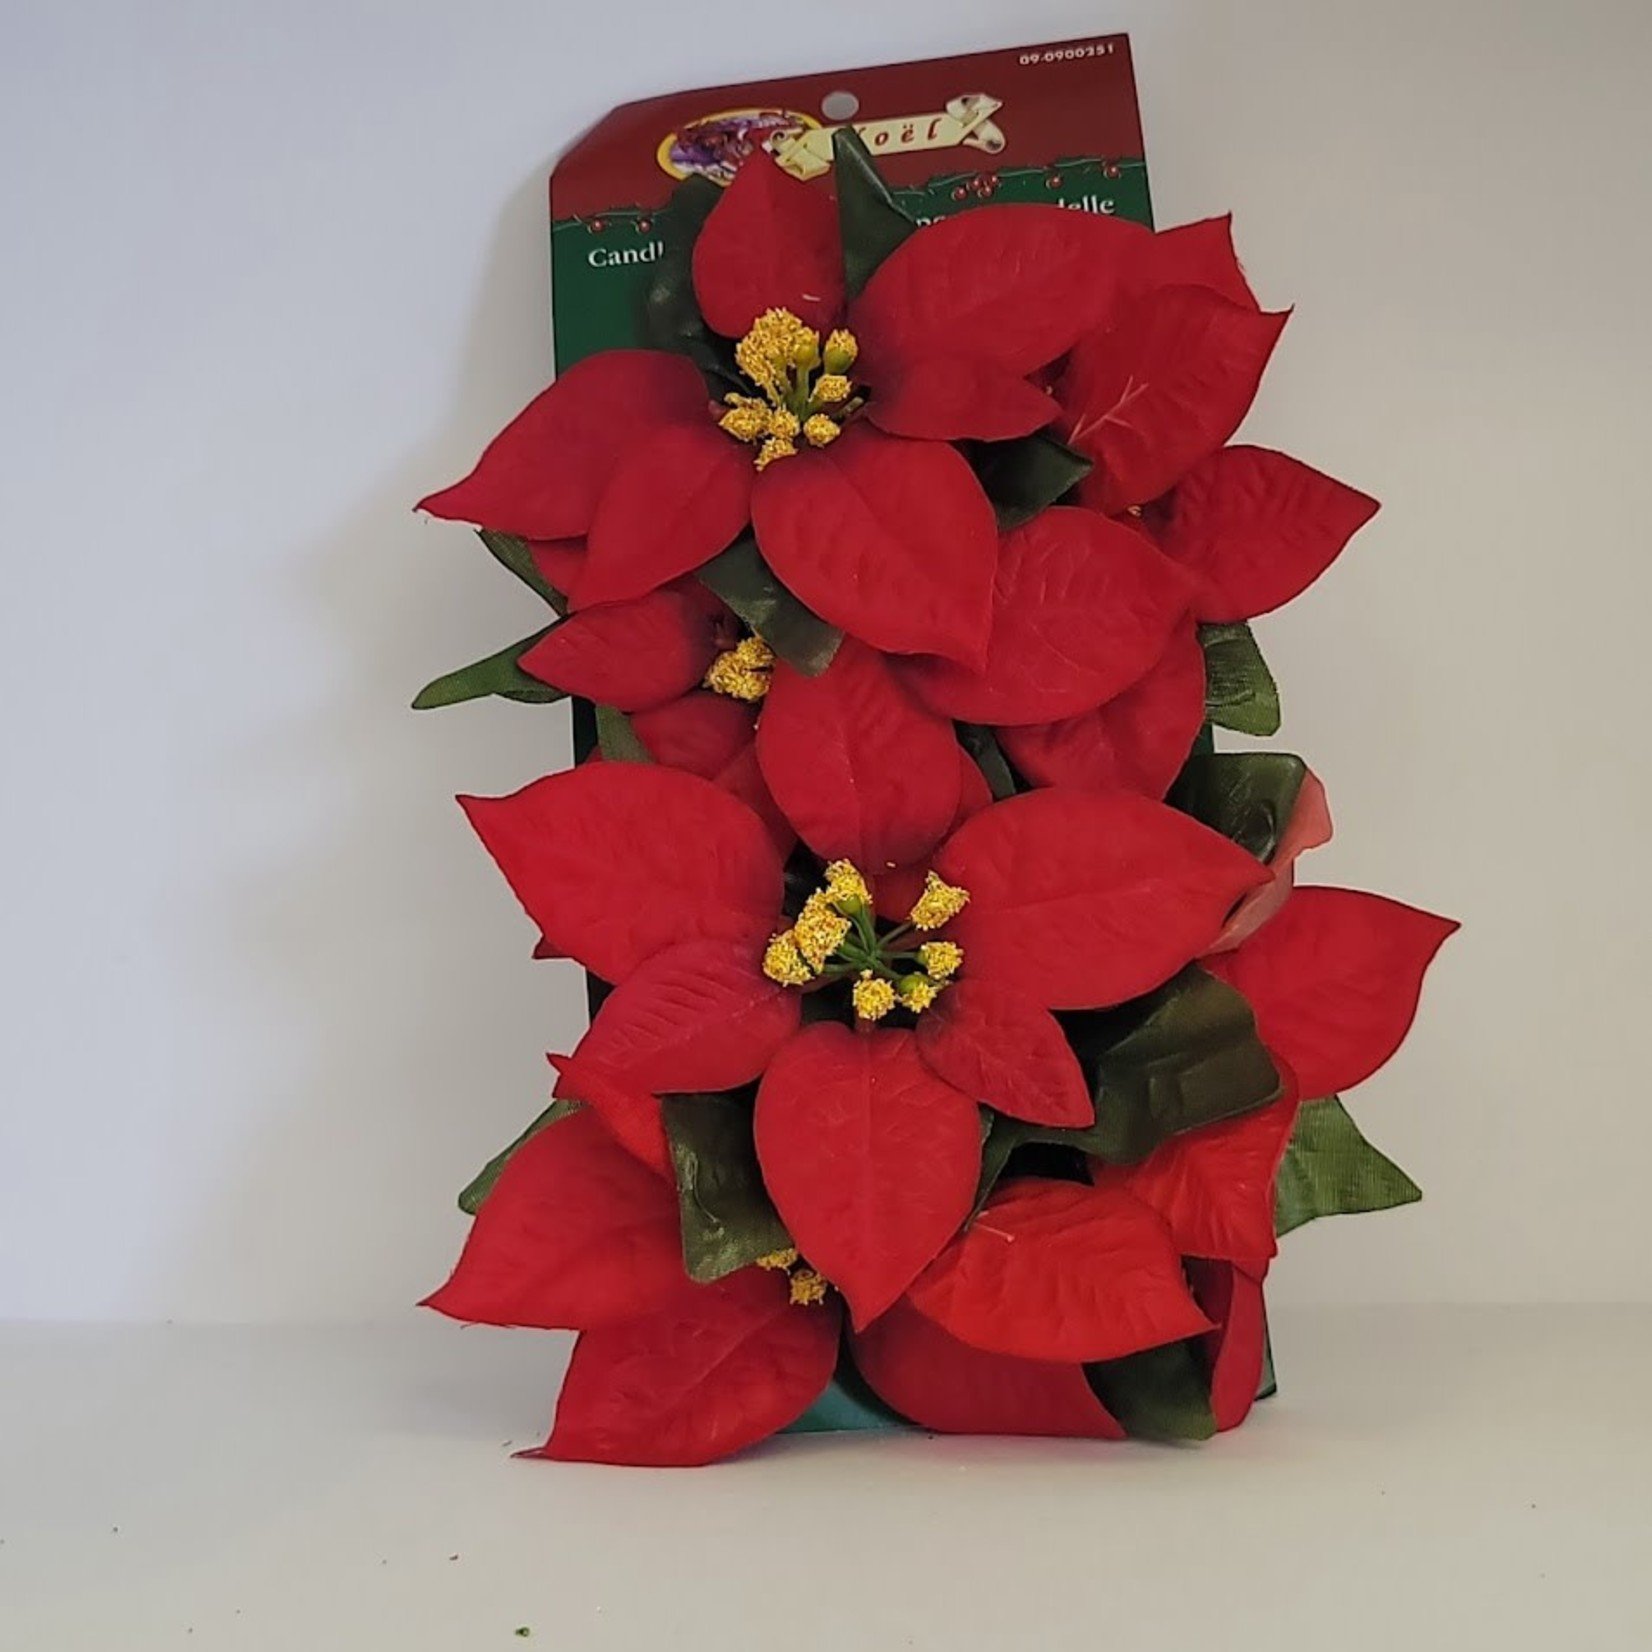 Candle Rings - Poinsettia (2 pack)